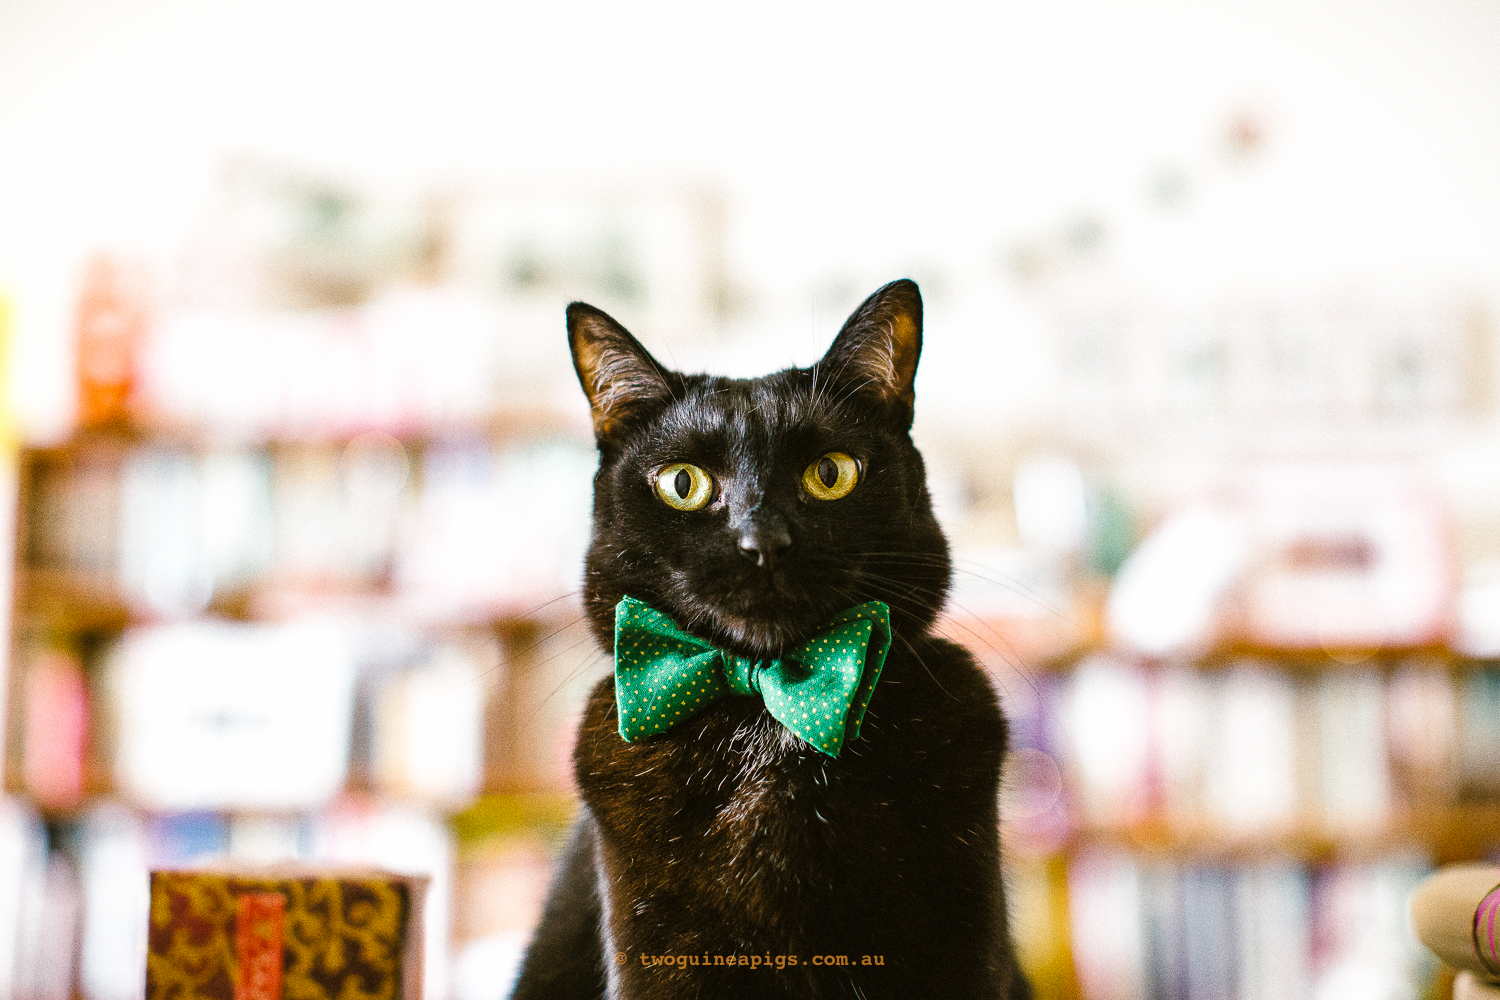 twoguineapigs_pet_photography_blackcats_happy_christmas_red_ribbons_christmas_morning_black_cats_pf_behind-the-scenes_catinberlin_bowties